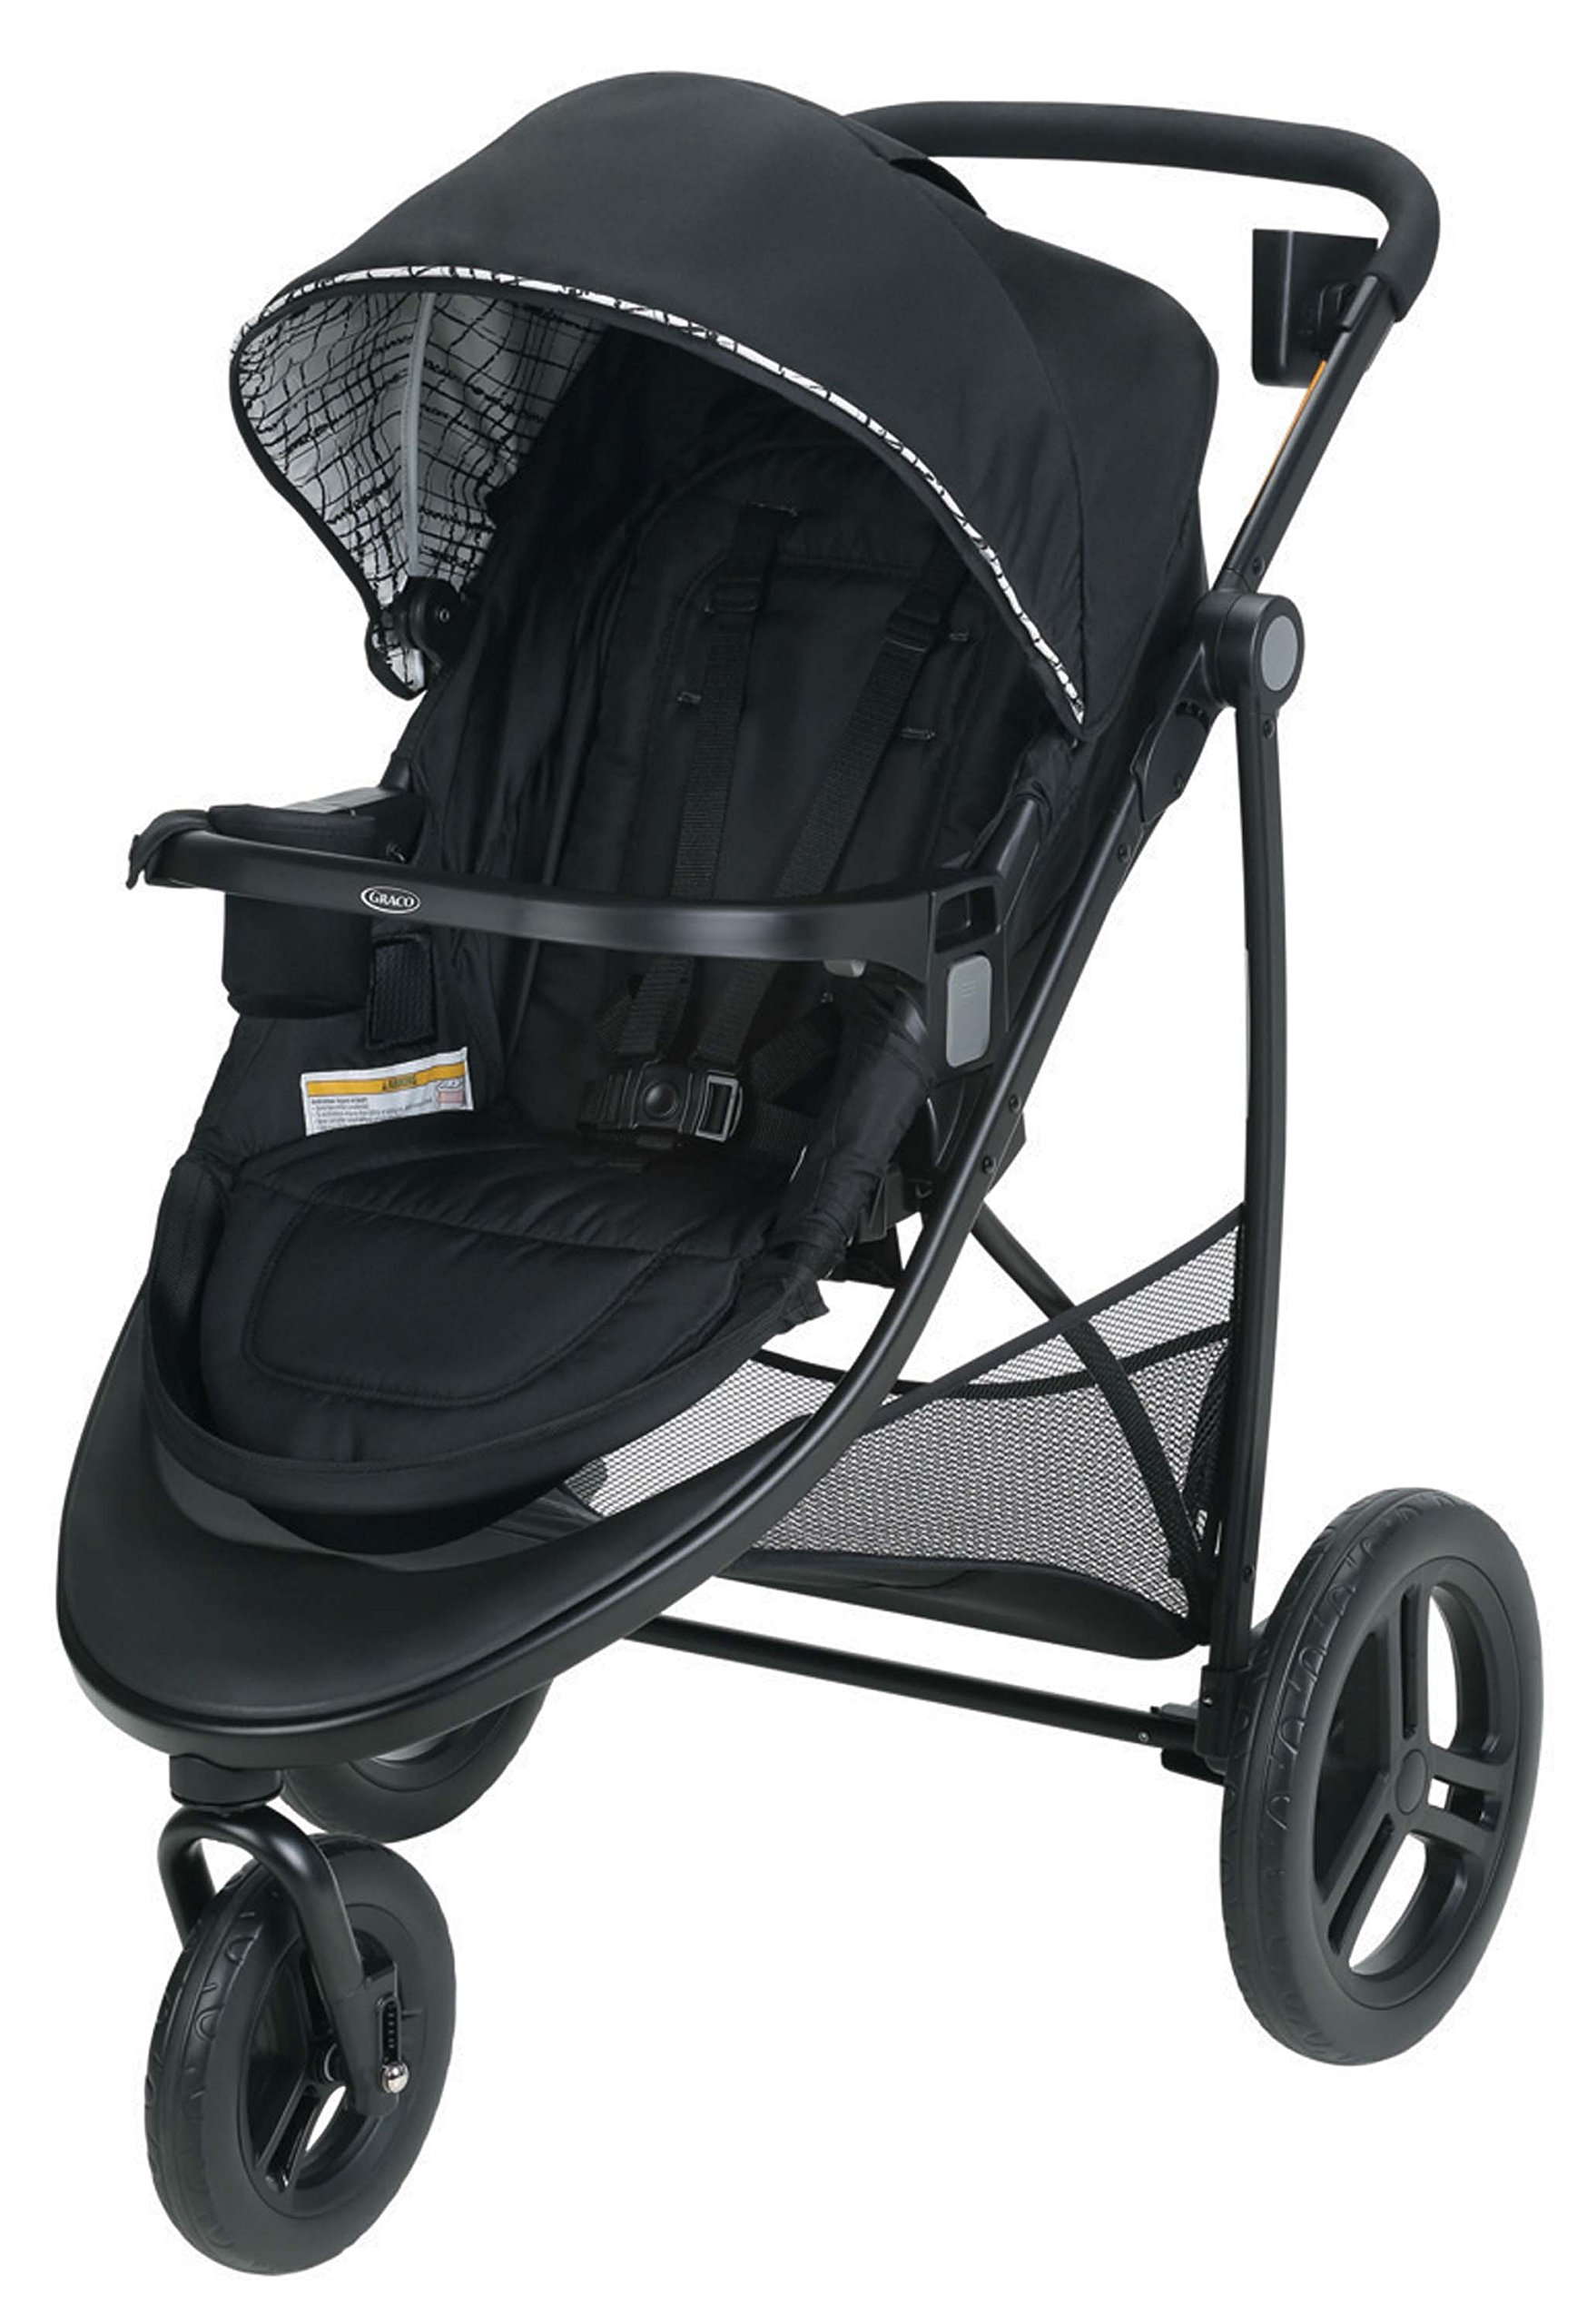 Graco Modes 3 Essentials LX Stroller, Includes Reversible Seat, Tiegen by Graco